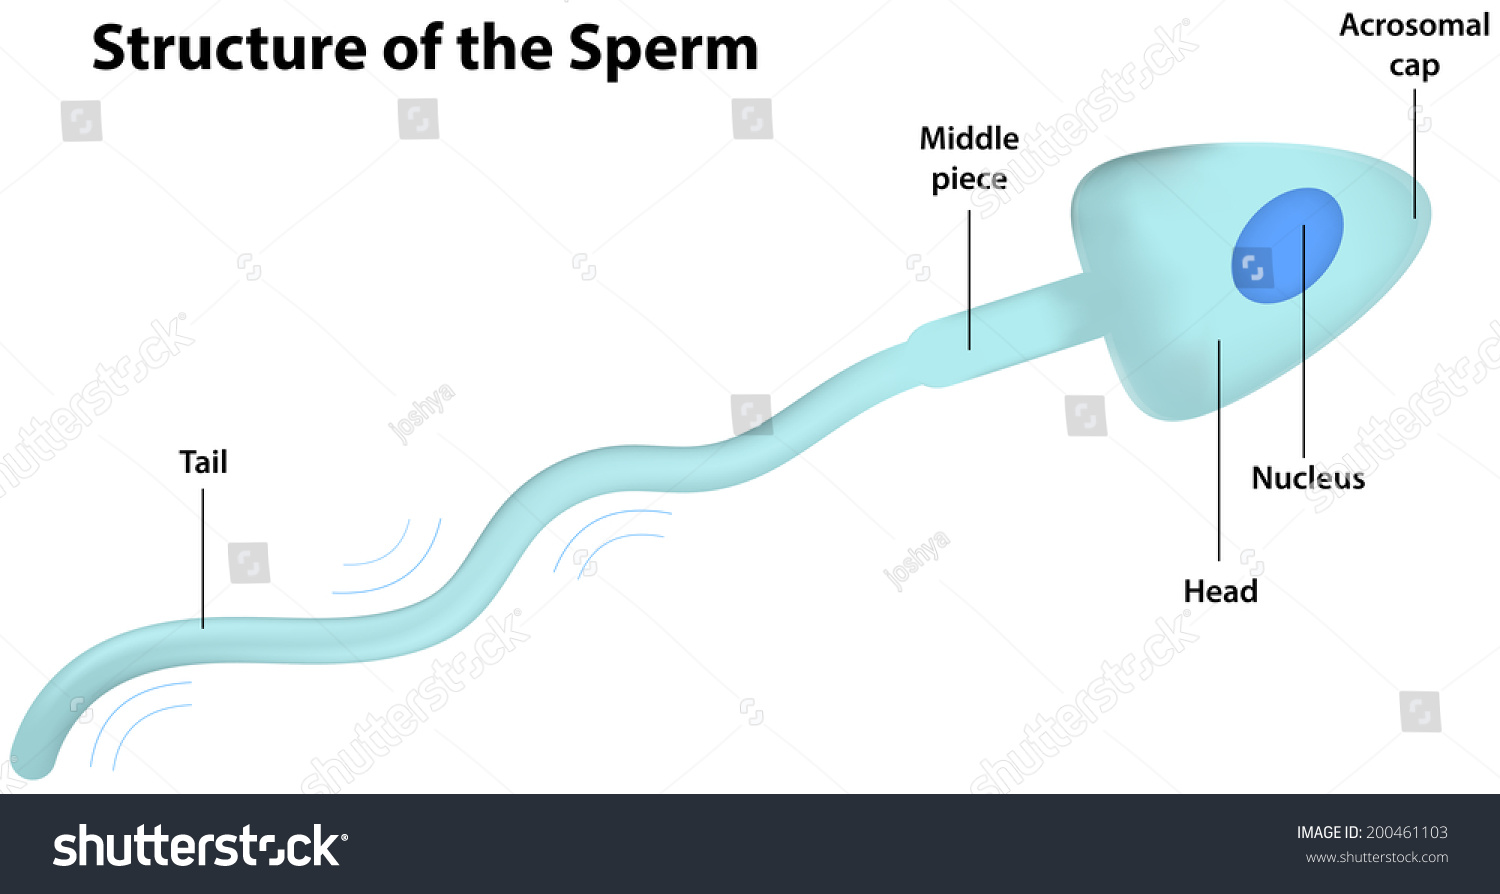 Labelled diagram of the sperm